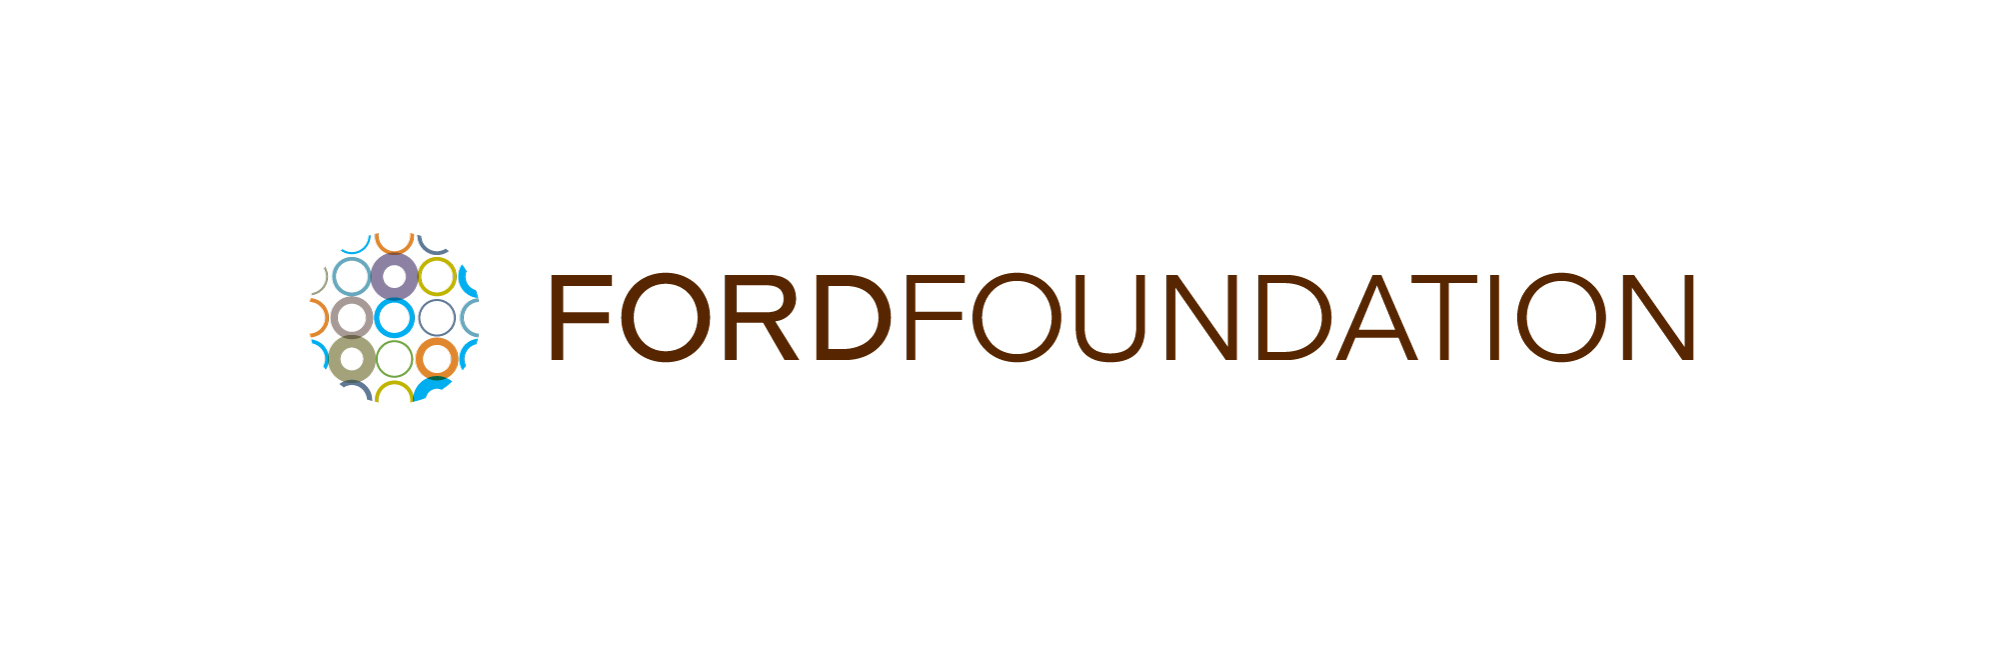 Nominees for The Ford Foundation Prize in Youth Employment, 2015